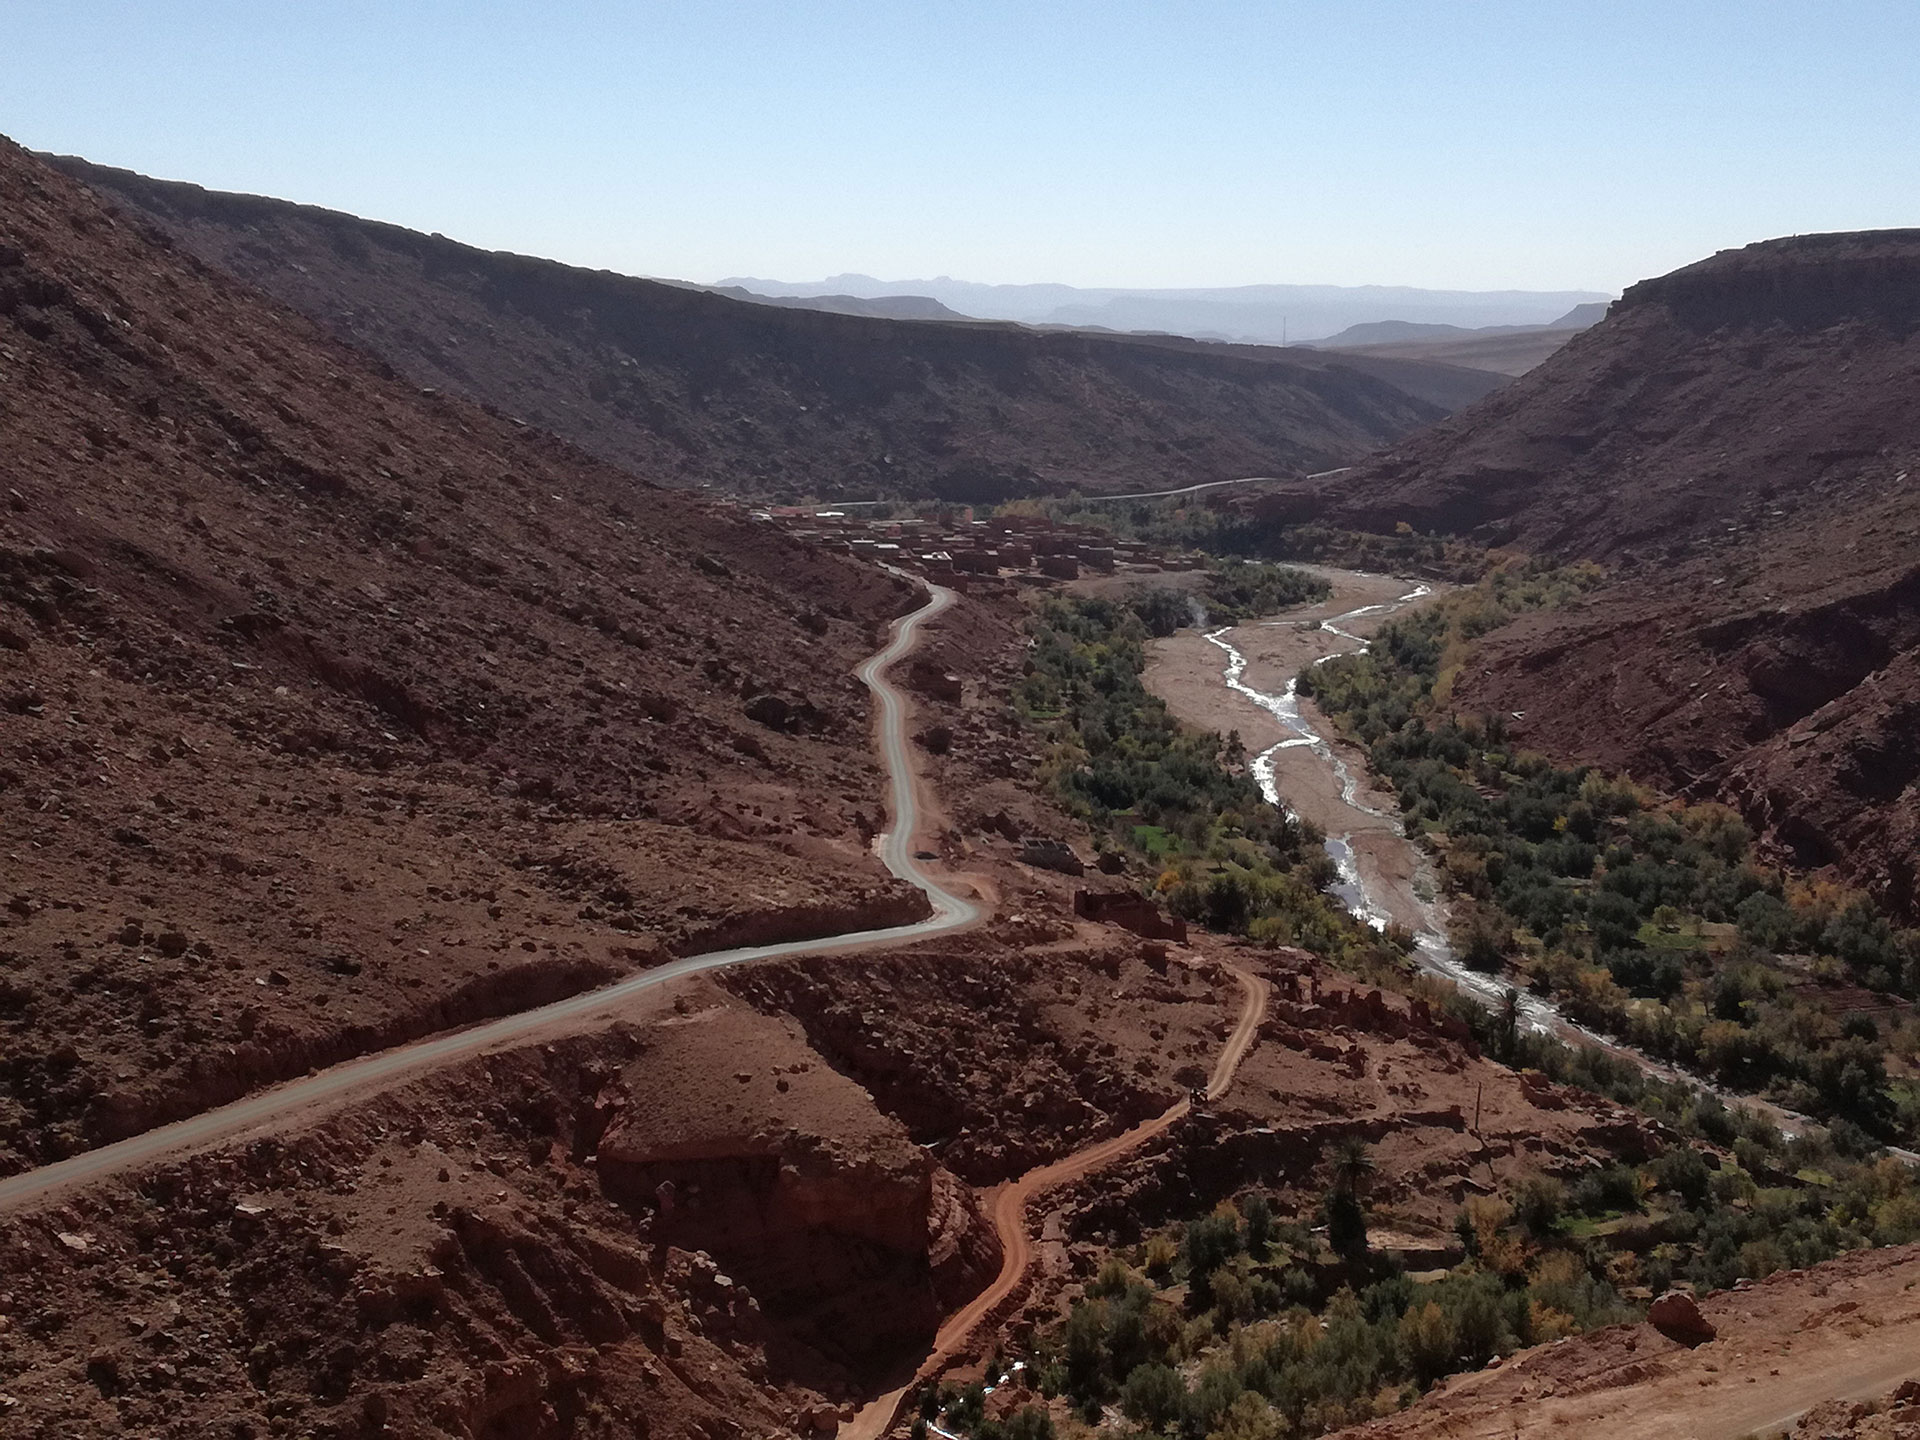 High Atlas Riverbed and road